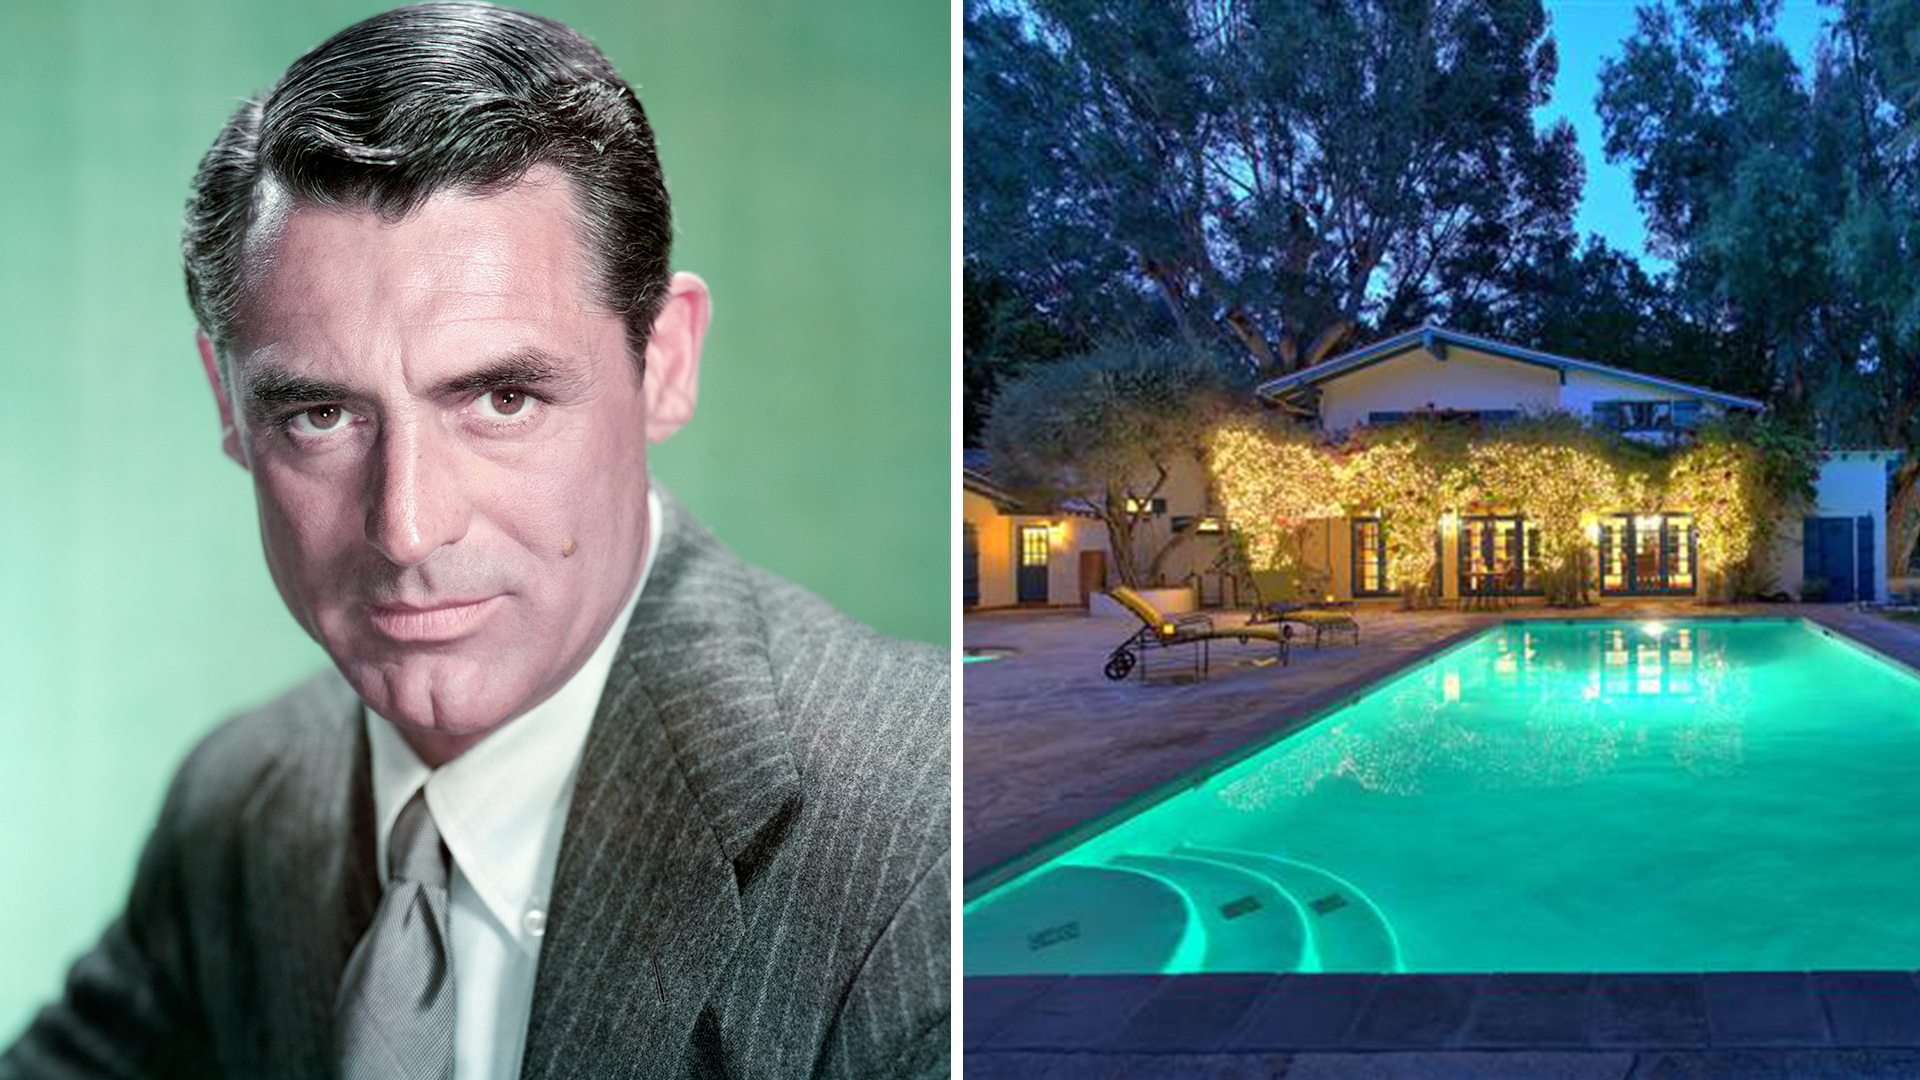 Two Story Living Room Cary Grant's Former Palm Springs Home Is For Sale - Today.com